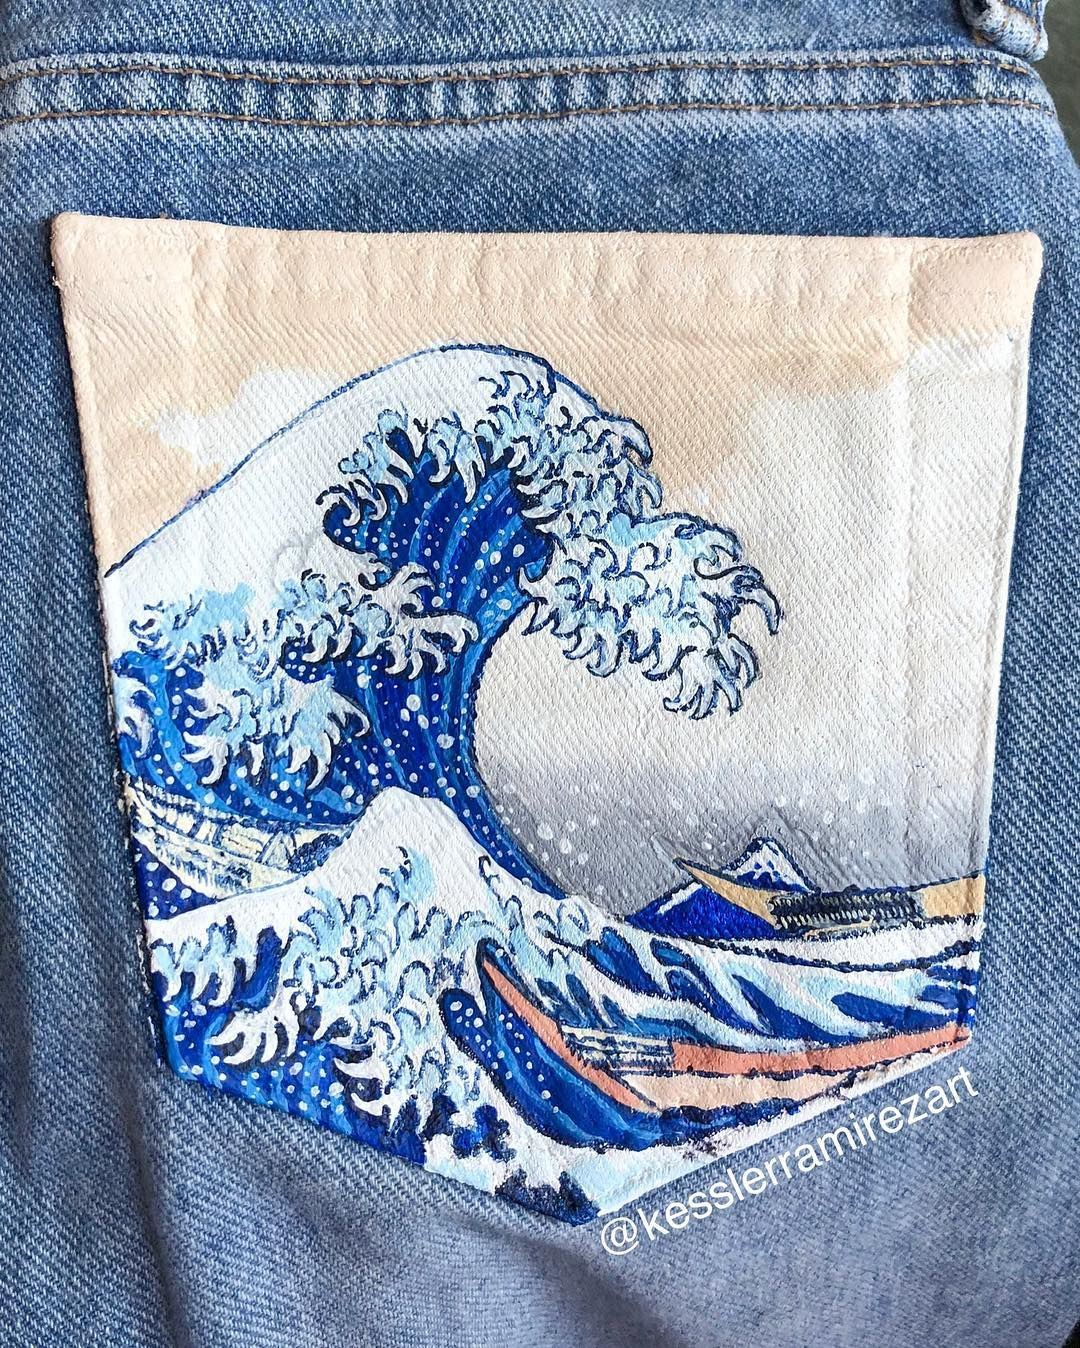 Kessler On Instagram The Great Wave Off Kanagawa The First